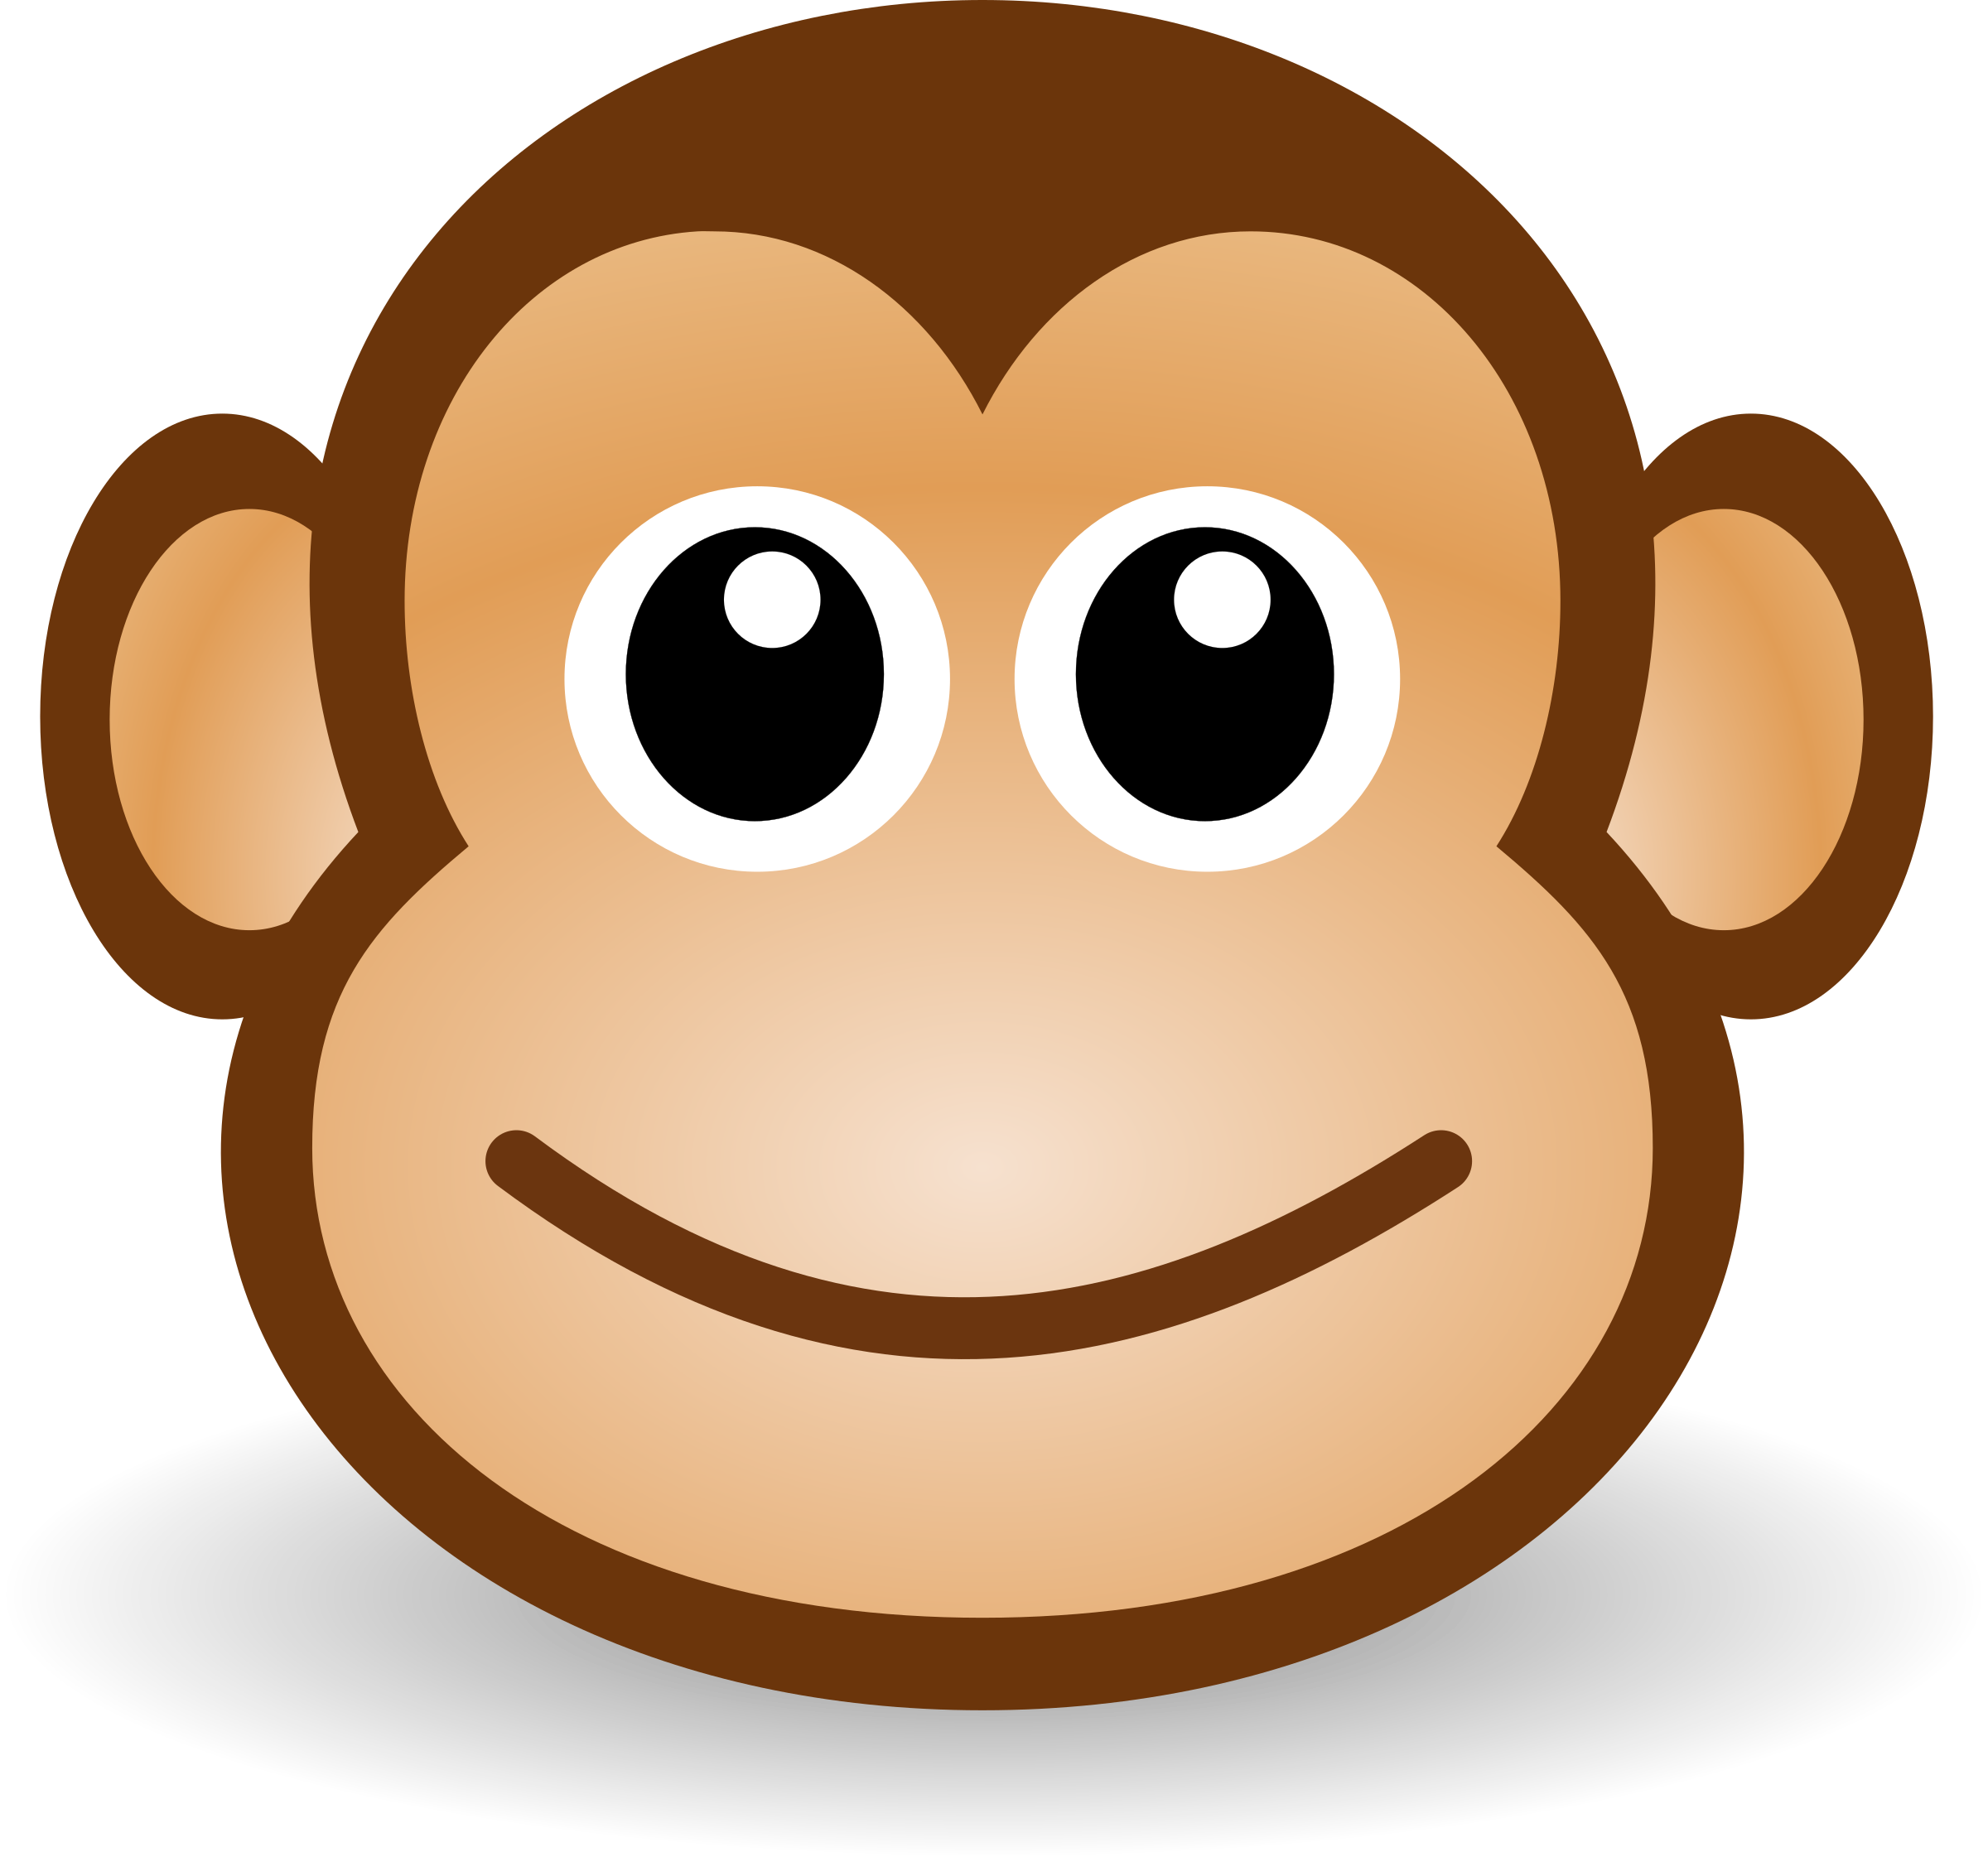 Monkeys clipart chicken. Funny monkey face big